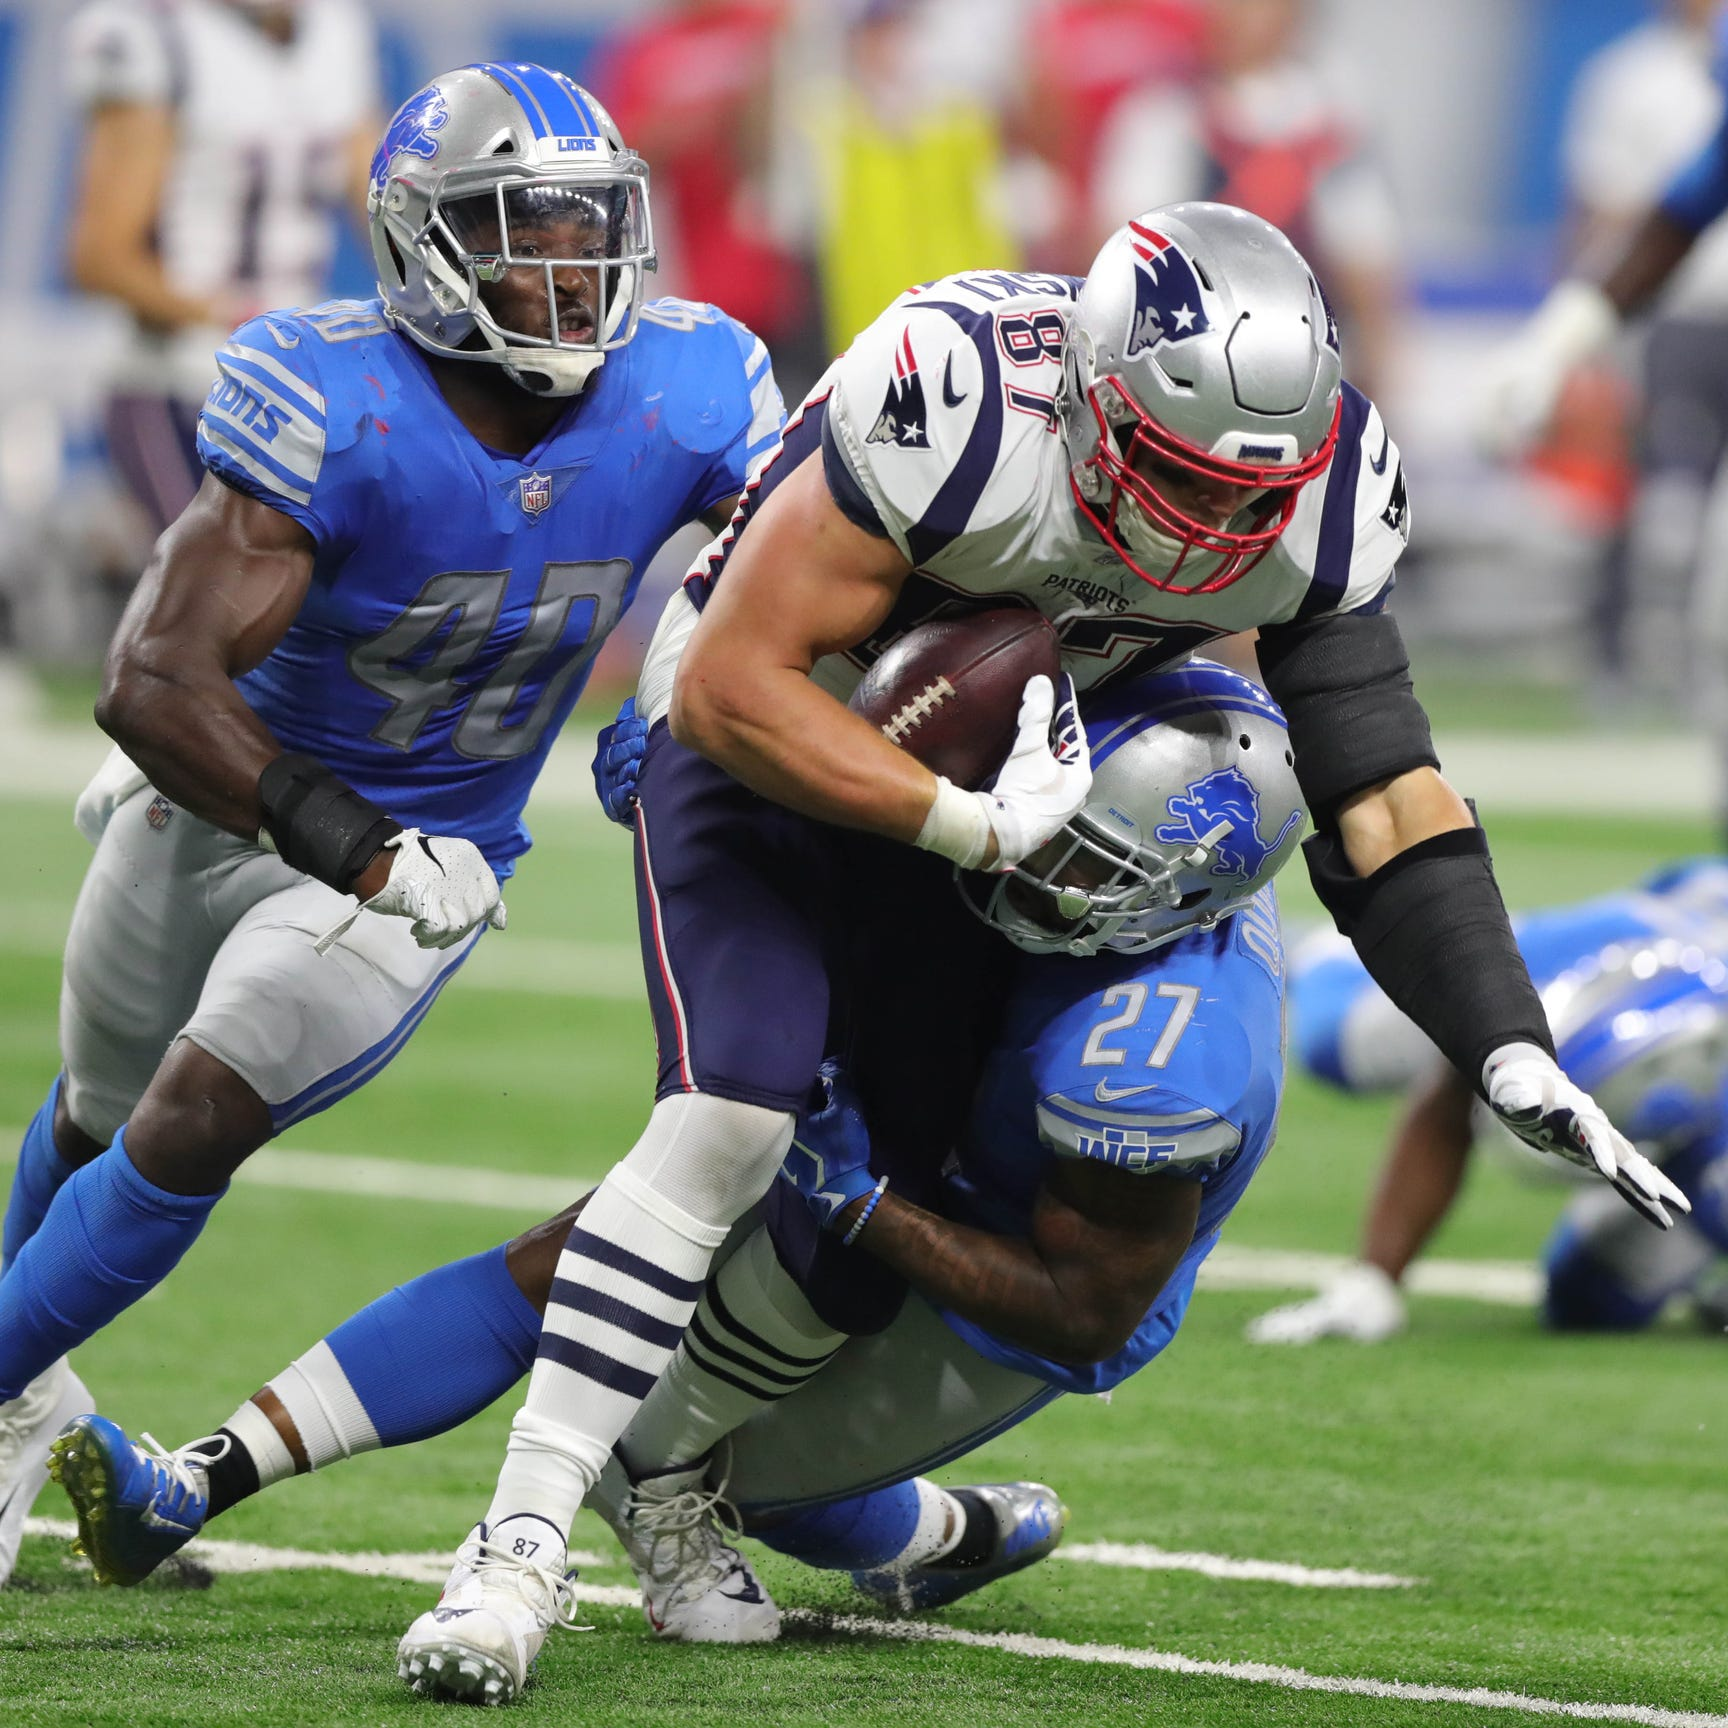 Patriots' Rob Gronkowski confirms threat to retire if traded to Lions